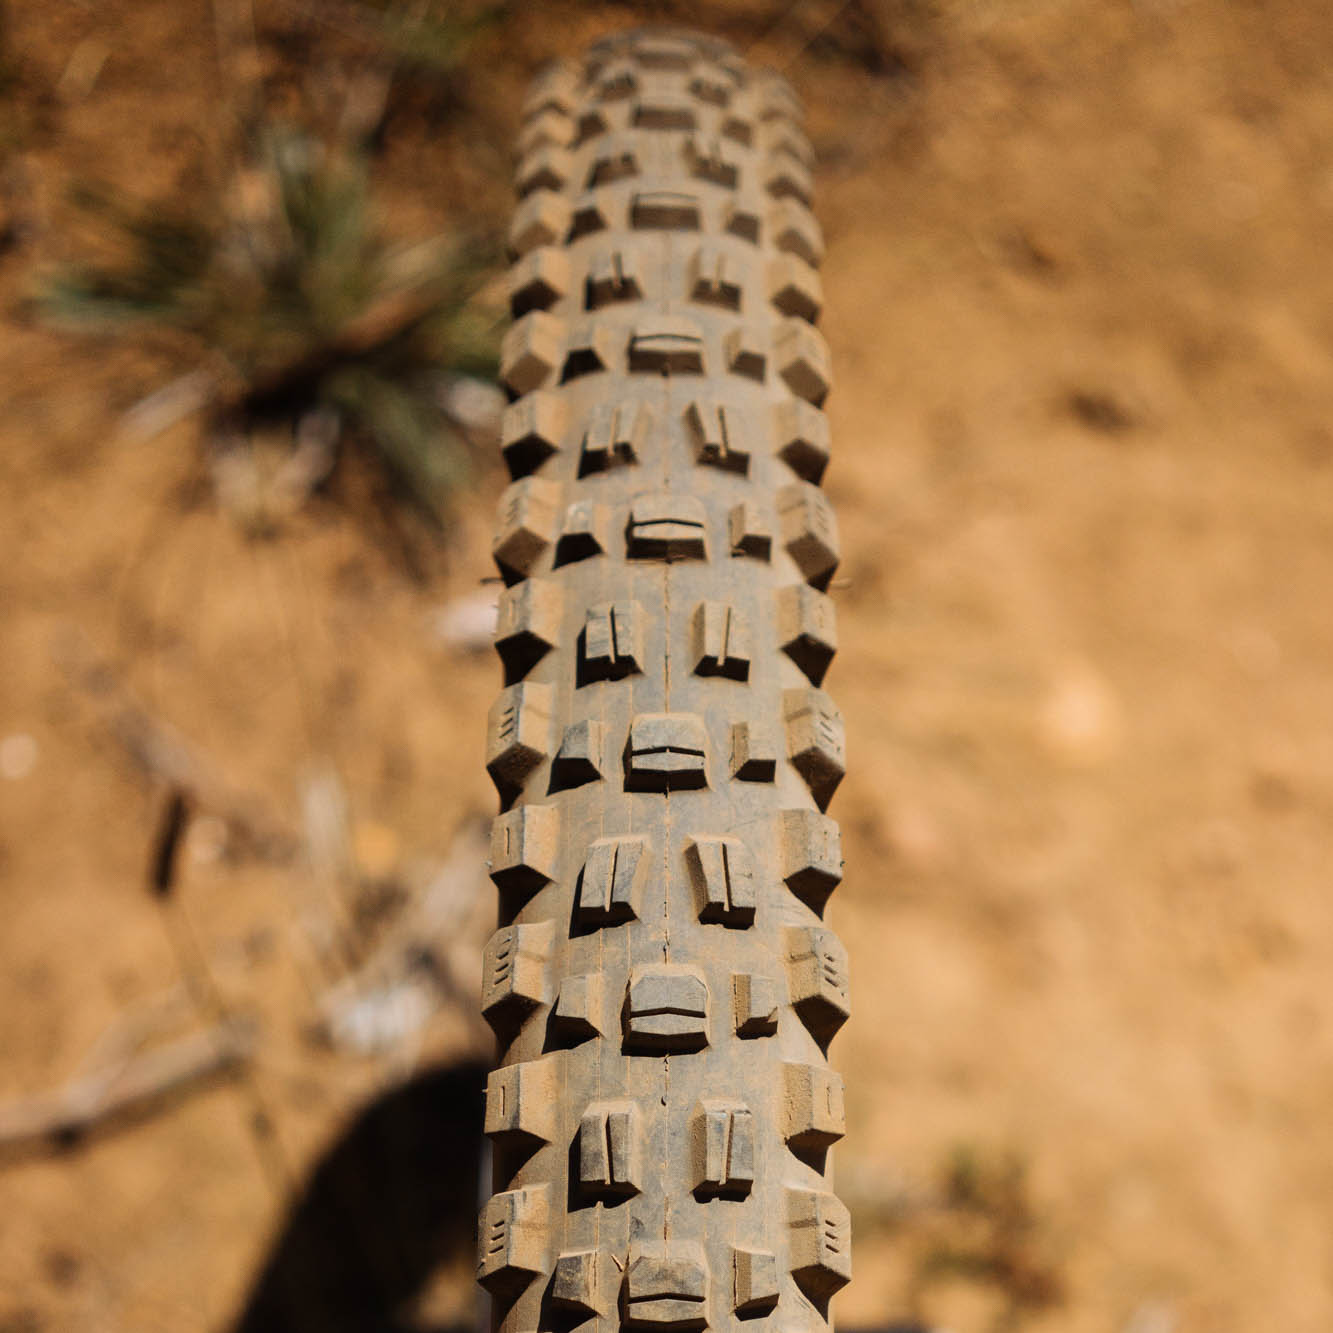 Assegai tread pattern